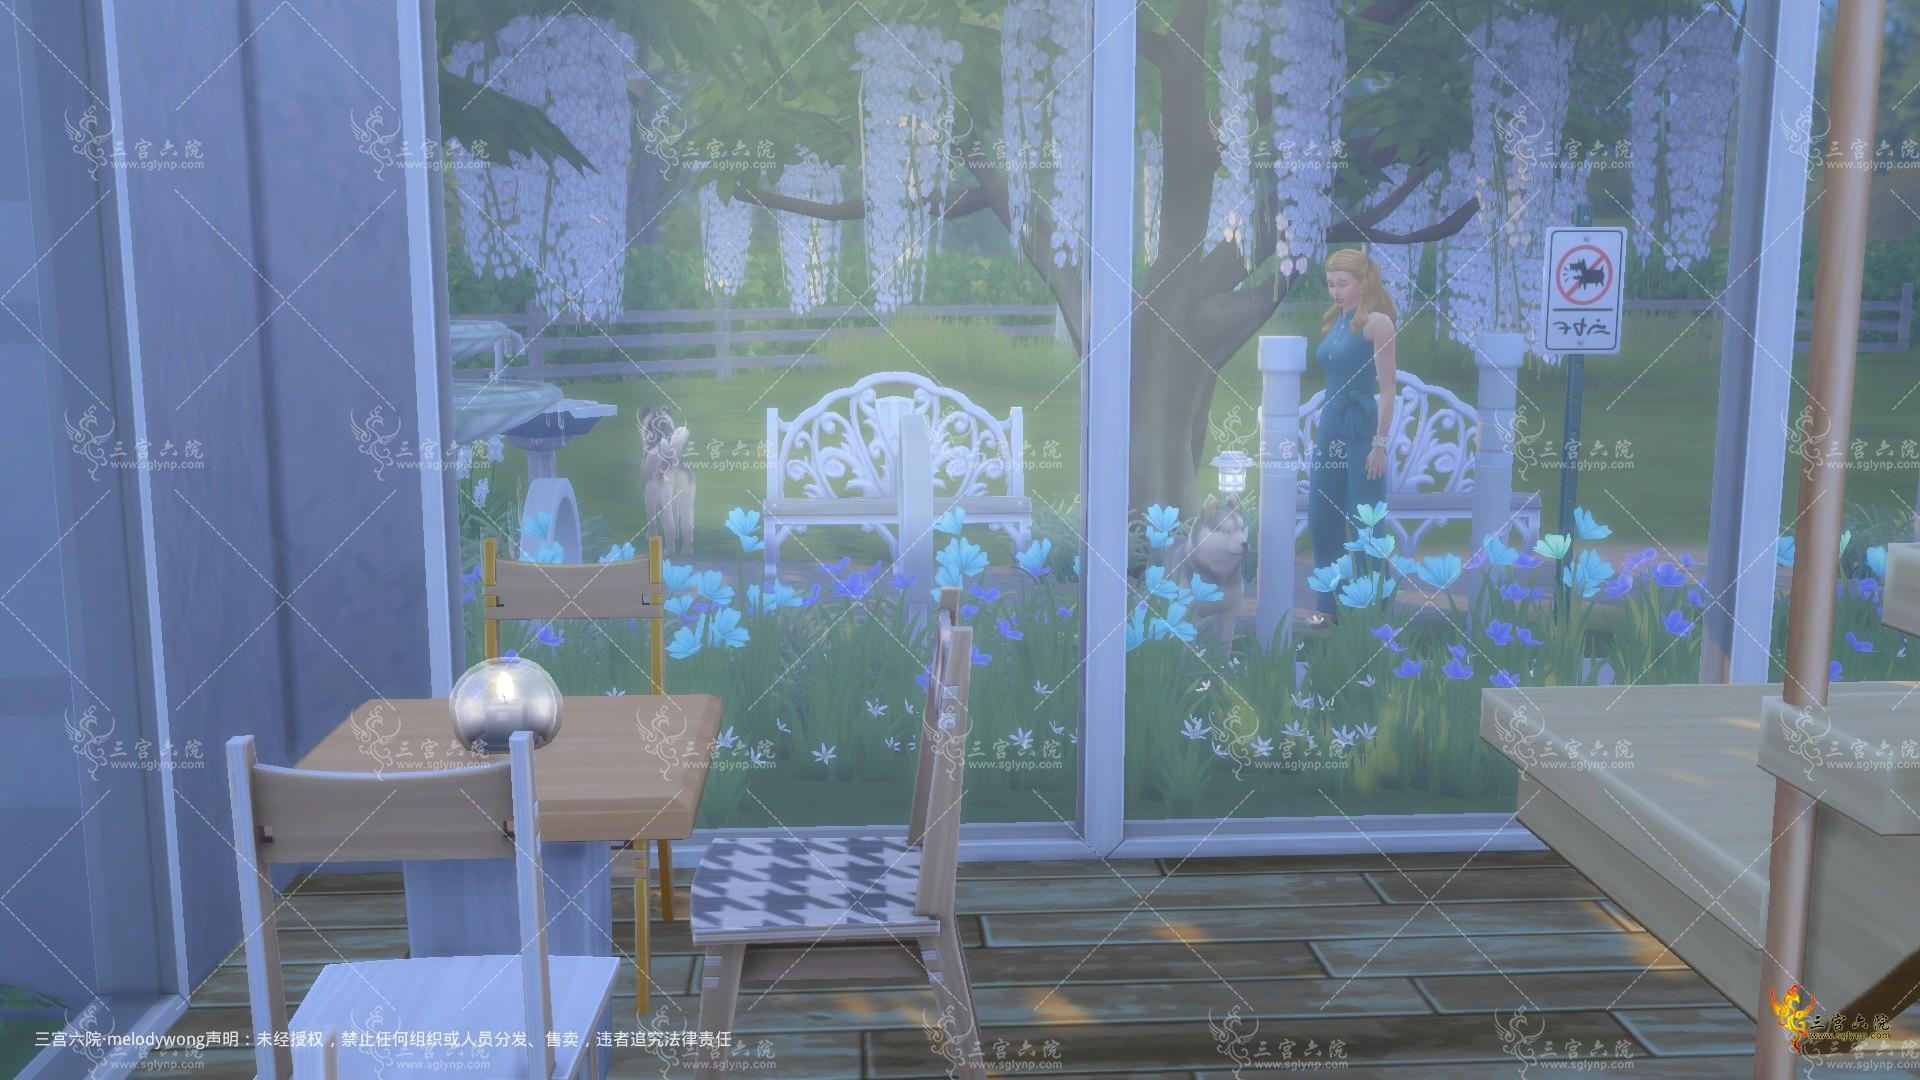 The Sims 4 2021_8_26 下午 10_05_57.png